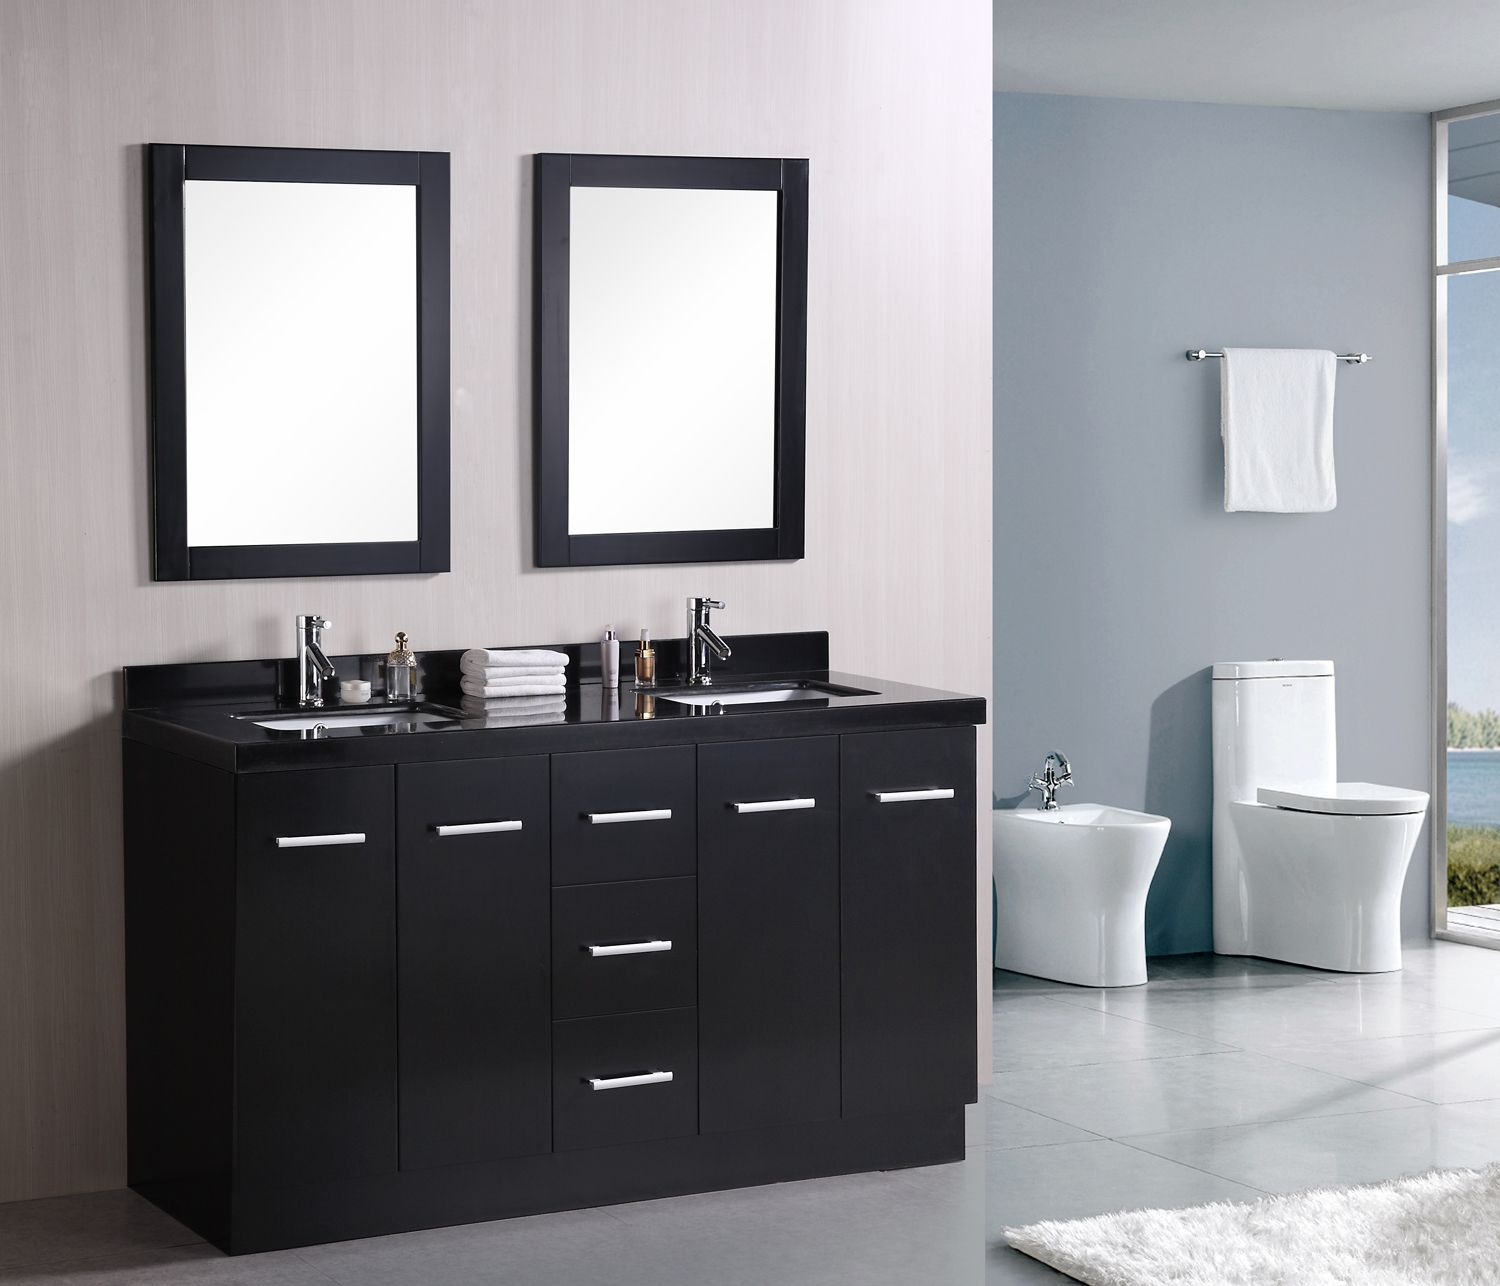 Design Element Cosmo Double Sink Bathroom Vanity Set Http - Bathroom vanity unit worktops for bathroom decor ideas